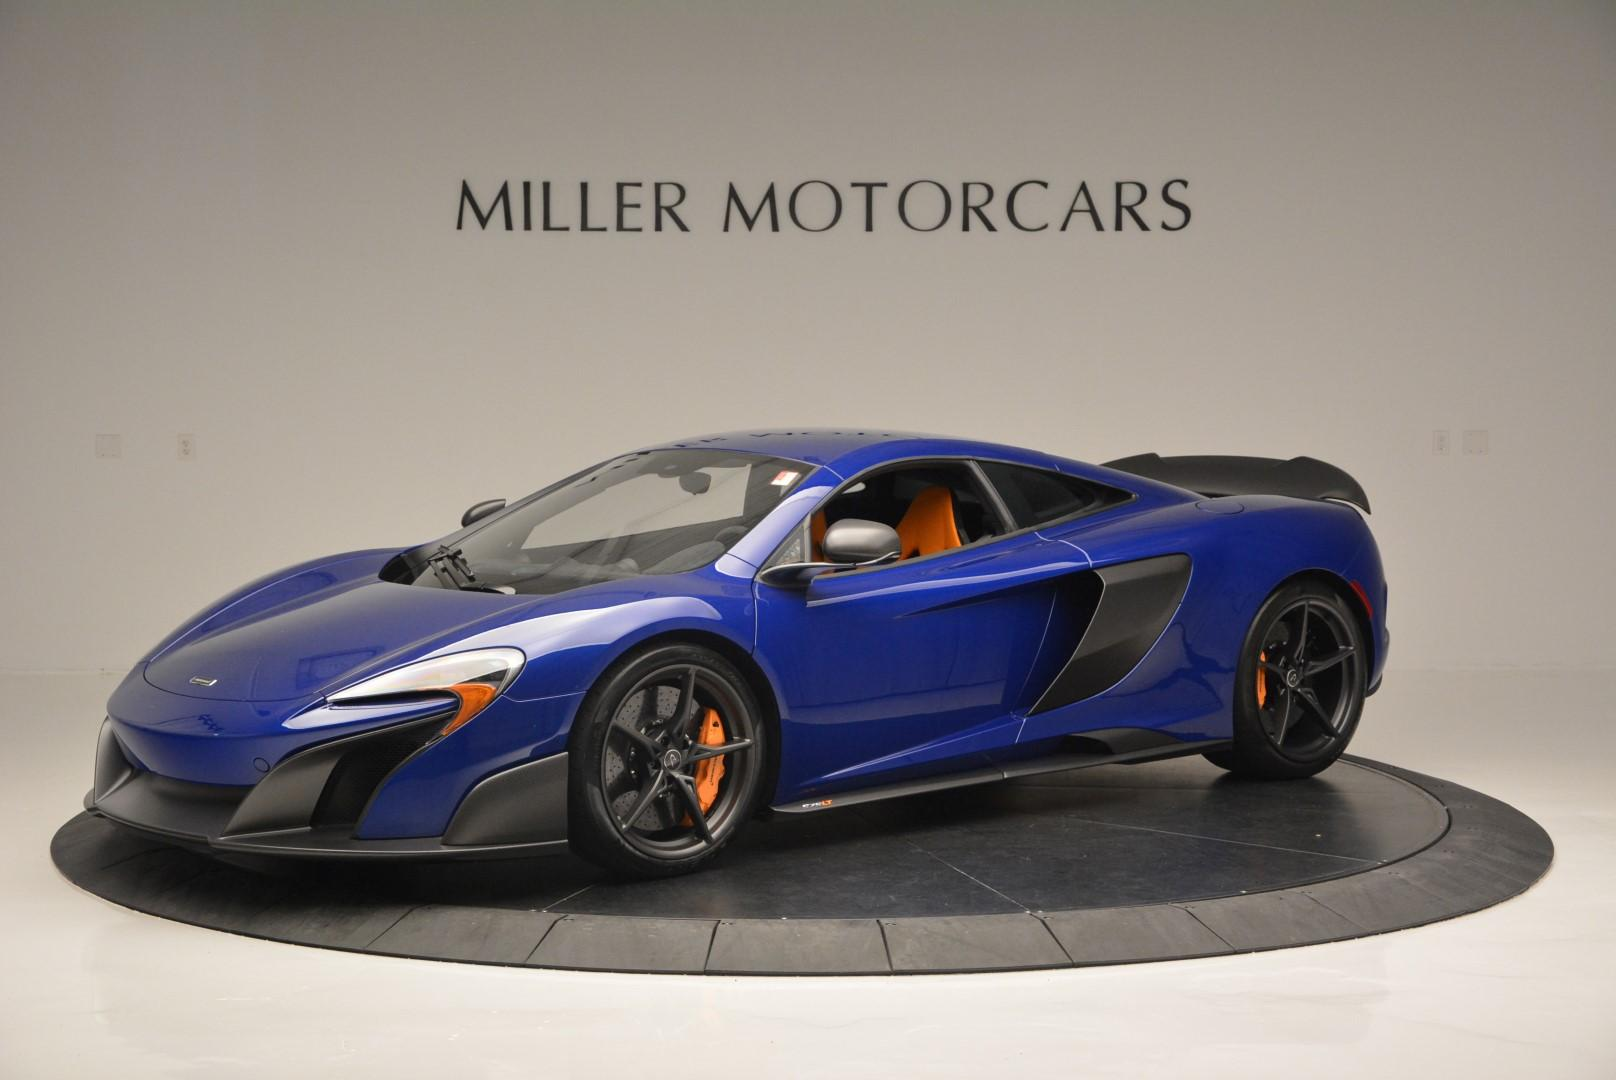 Used 2016 McLaren 675LT Coupe for sale Sold at McLaren Greenwich in Greenwich CT 06830 1